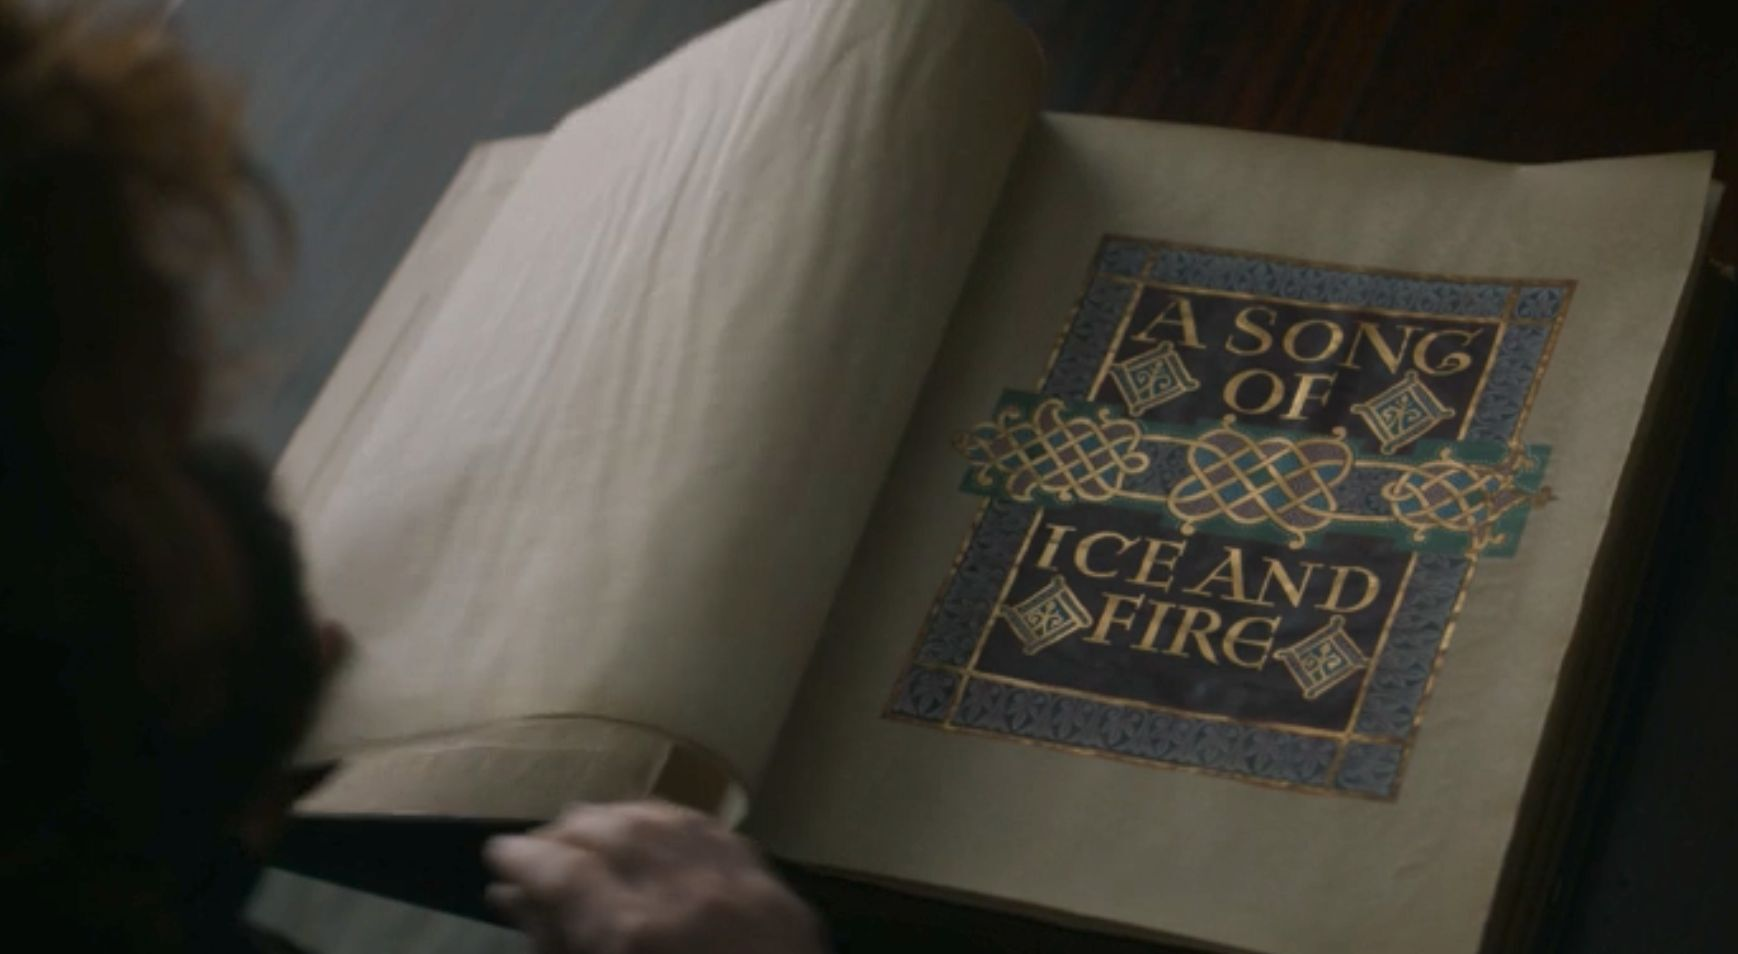 A grateful ode to Game of Thrones